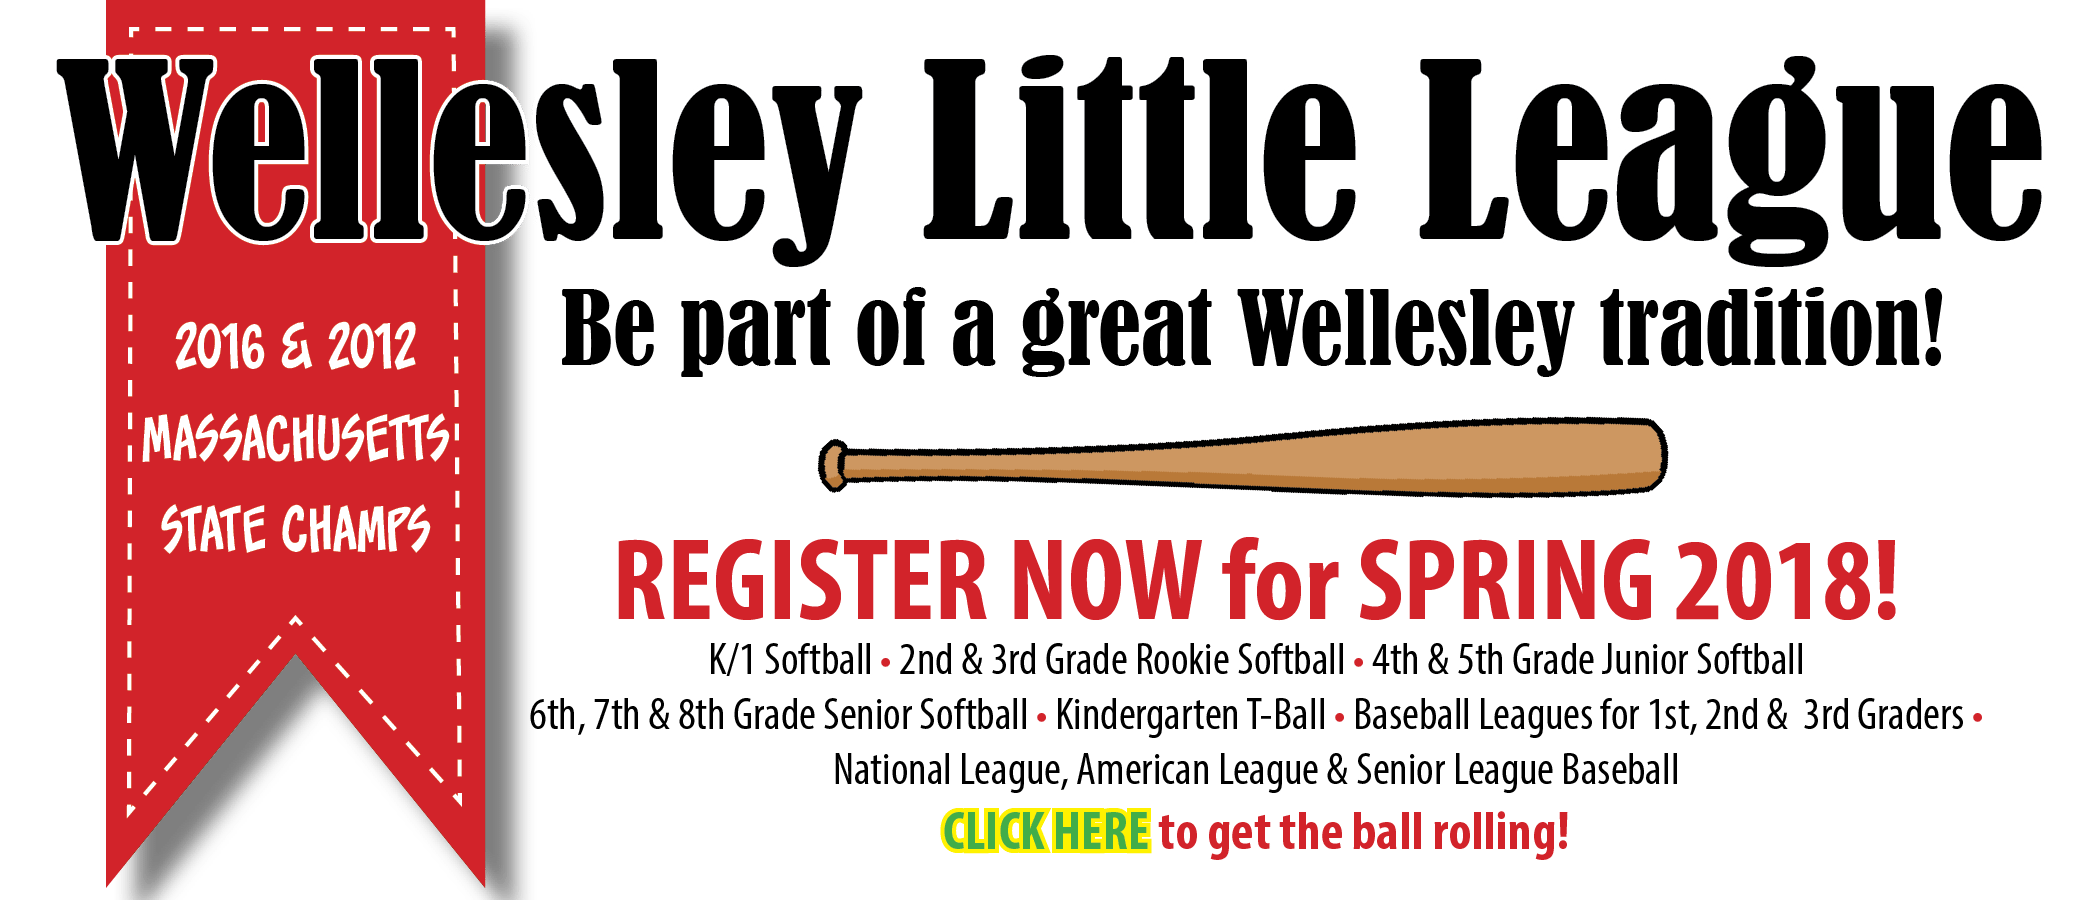 Wellesley Little League registration